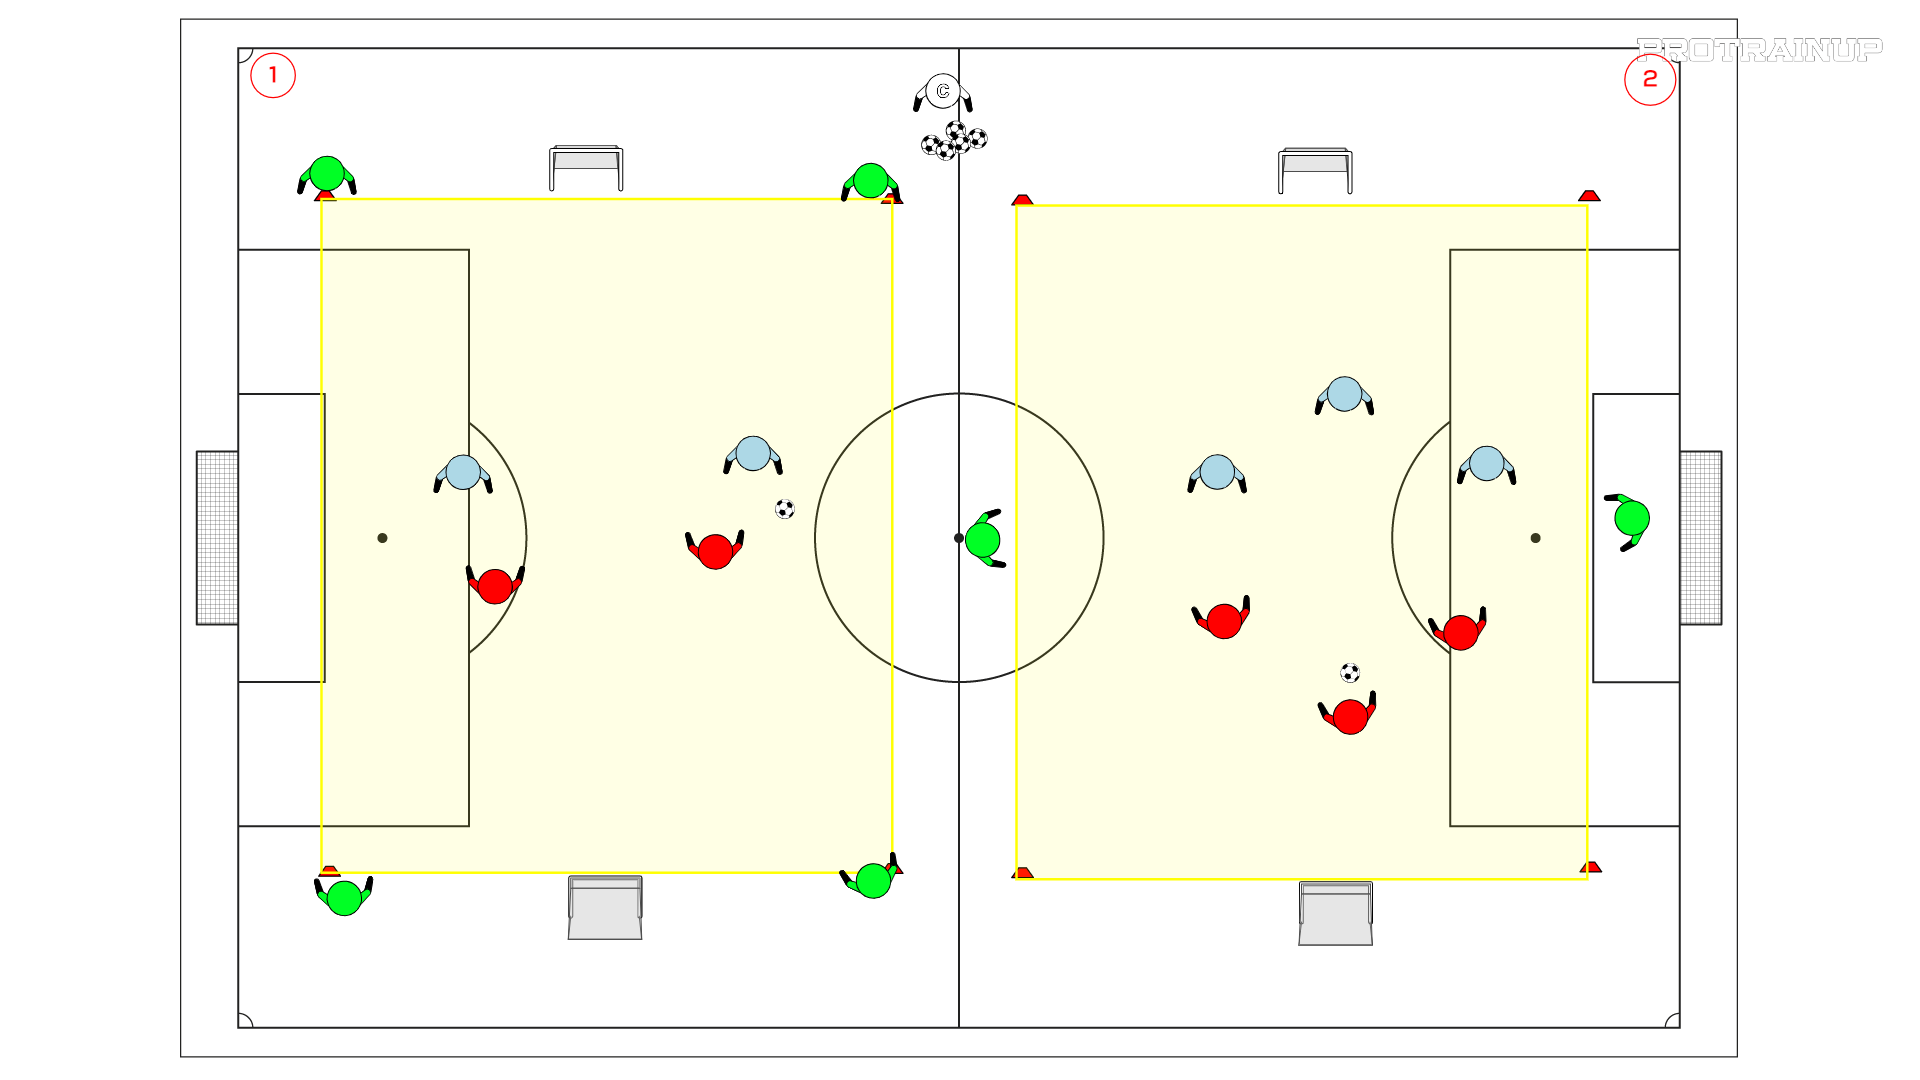 skill game - combinations play in 2x2 and 3x3 situations